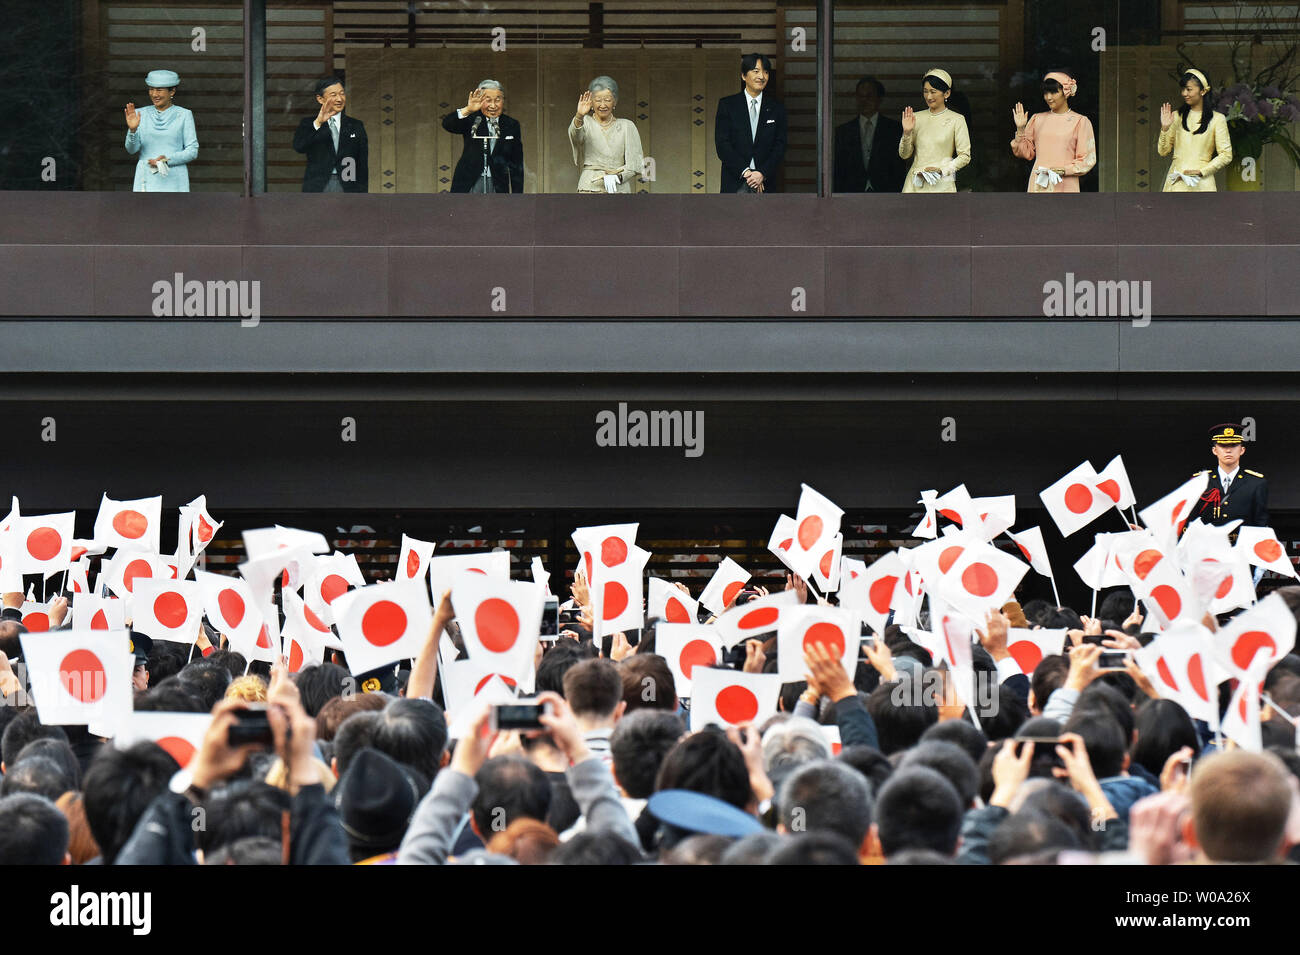 Japan's Emperor Akihito(L3) waves to well-wishers with Empress Michiko(L4), Crown prince Naruhito(L2), Crown princess Masako(L), Prince Akishino (R4), his wife Princess Kiko(R3), Princess  Mako(R2) and Princess Kako(R) during his Majesty's 83rd birthday greeting at the East Plaza, Imperial Palace in Tokyo, Japan, on December 23, 2016.     Photo by Keizo Mori/UPI - Stock Image